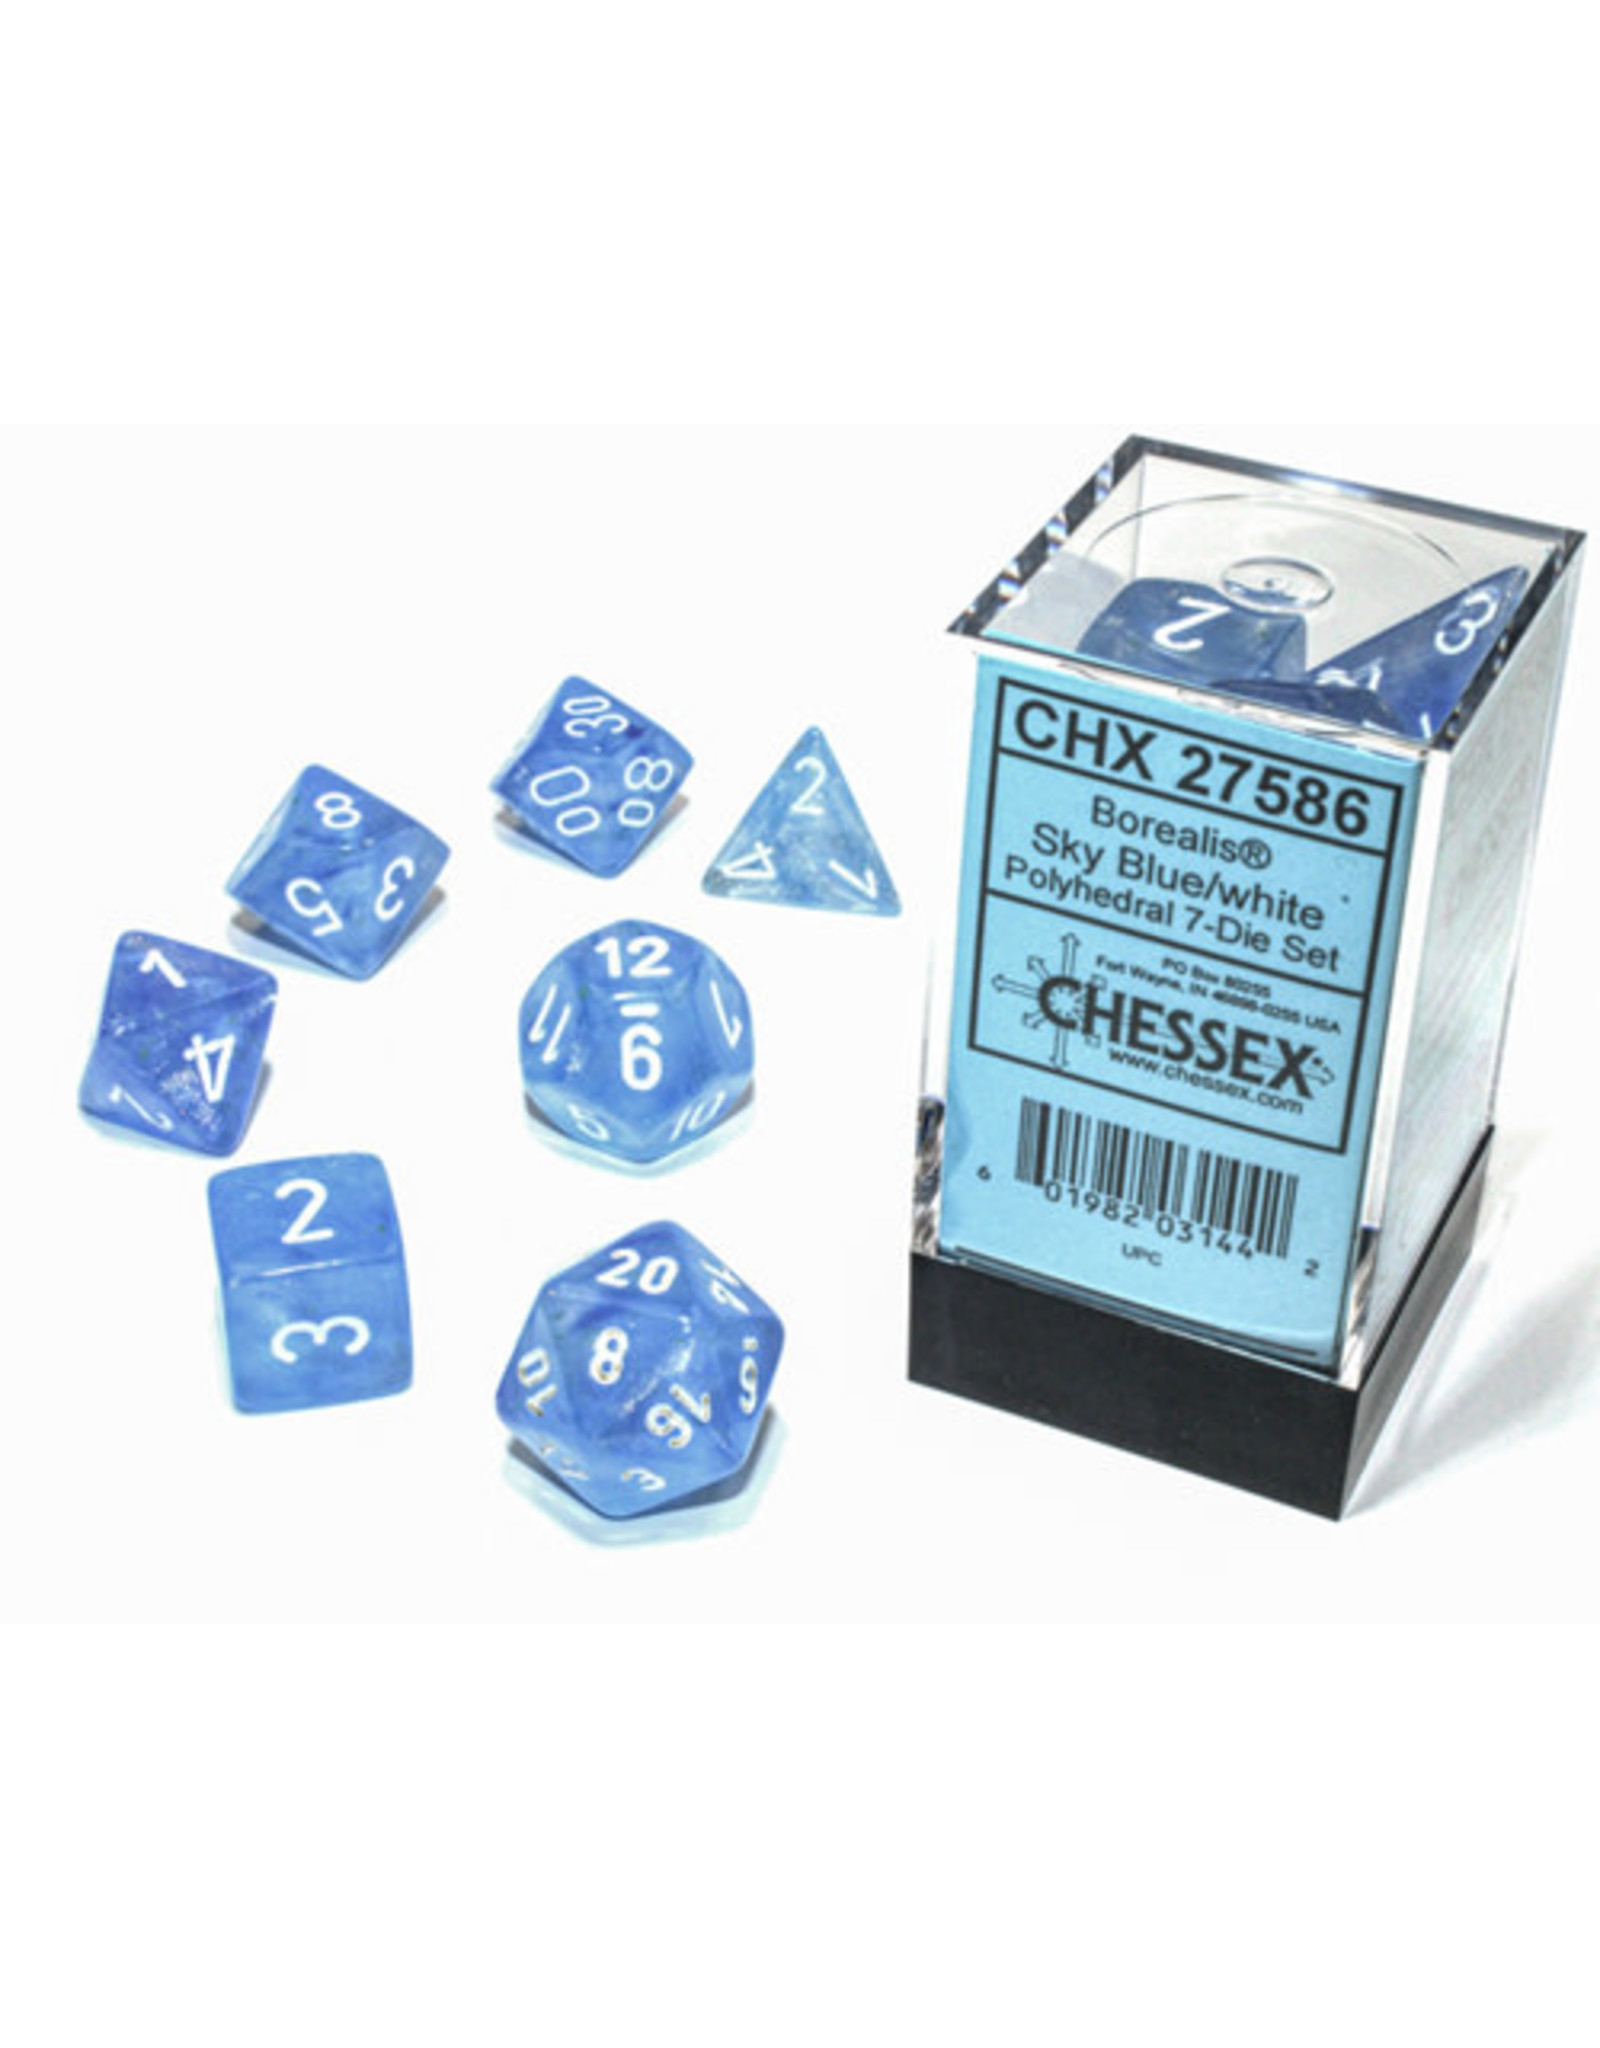 Chessex Borealis Polyhedral Sky Blue/white Luminary 7-Die